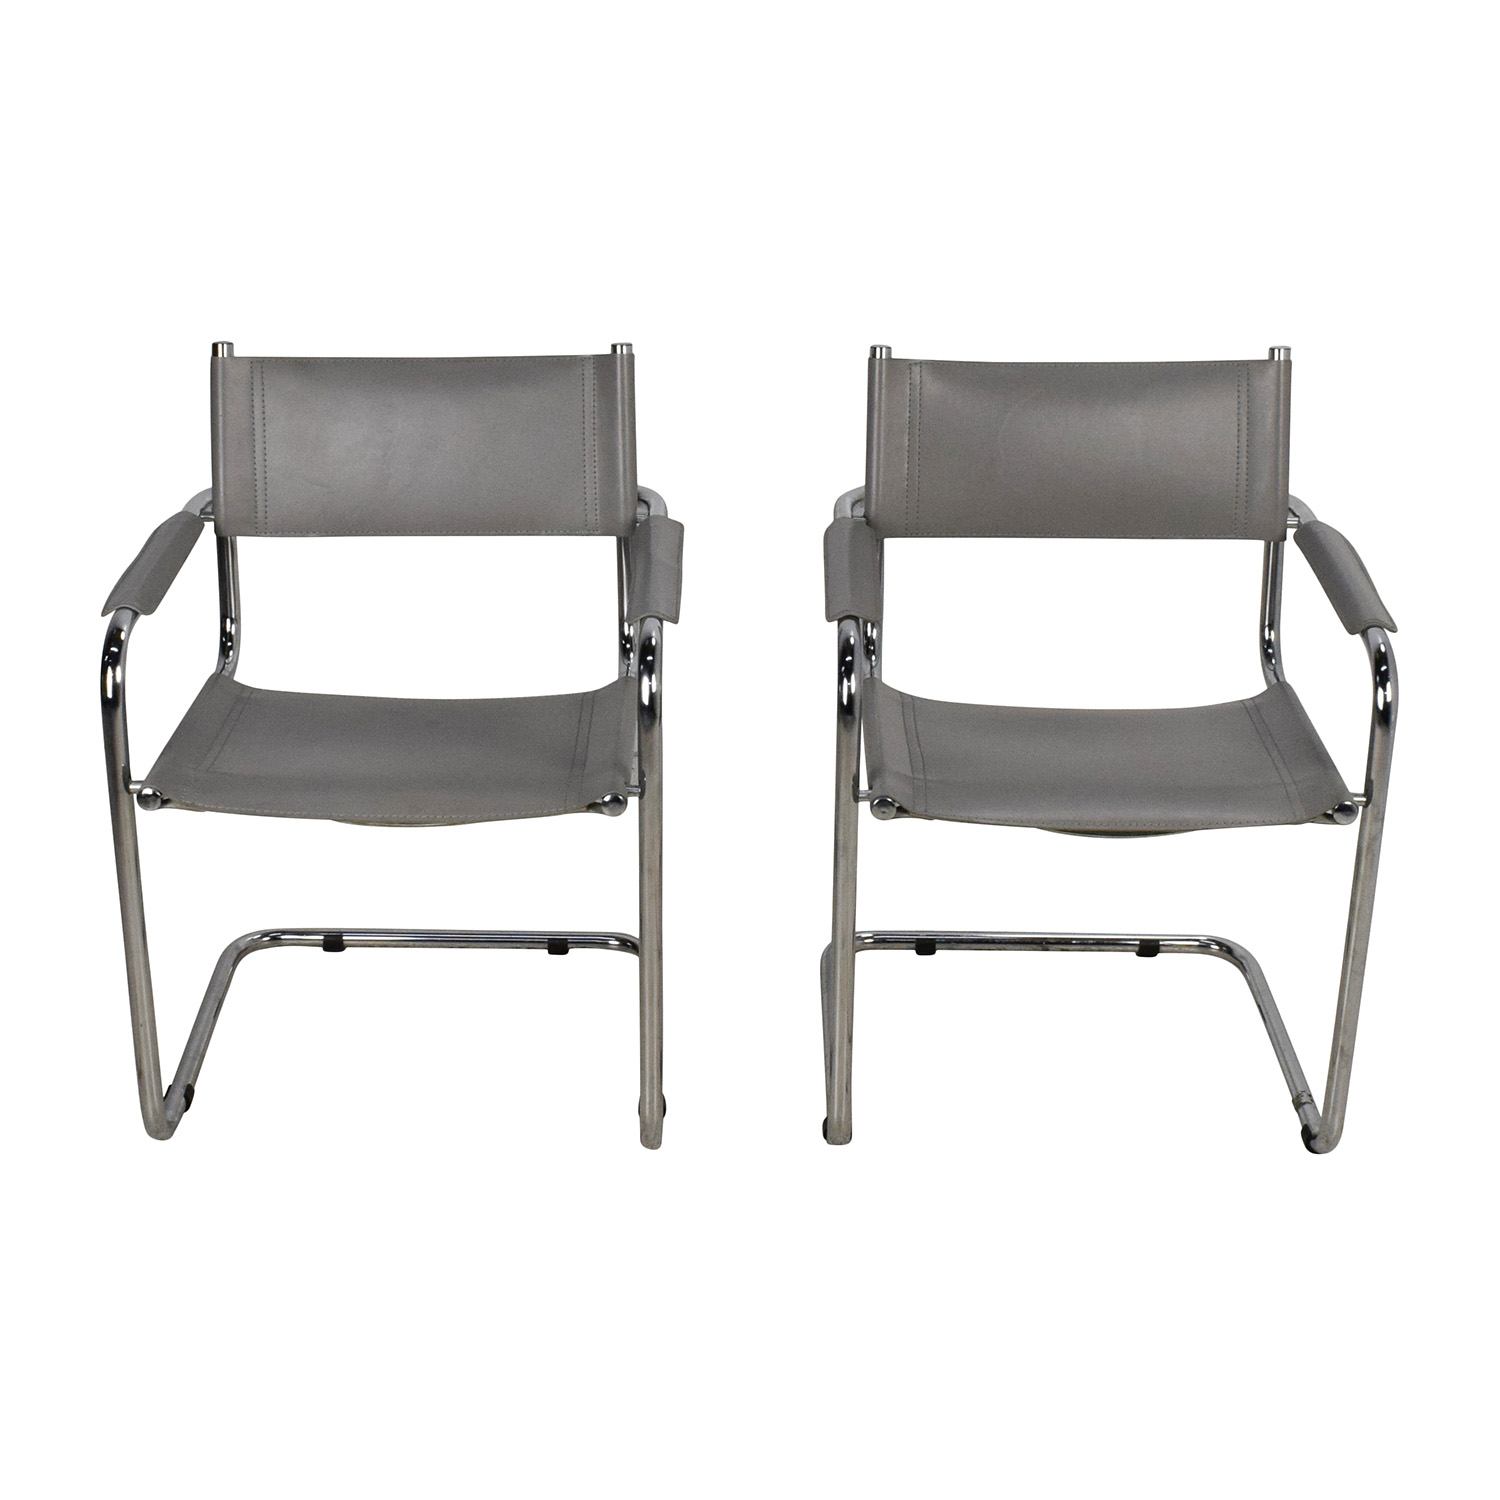 Pair of Sling Chairs Chairs